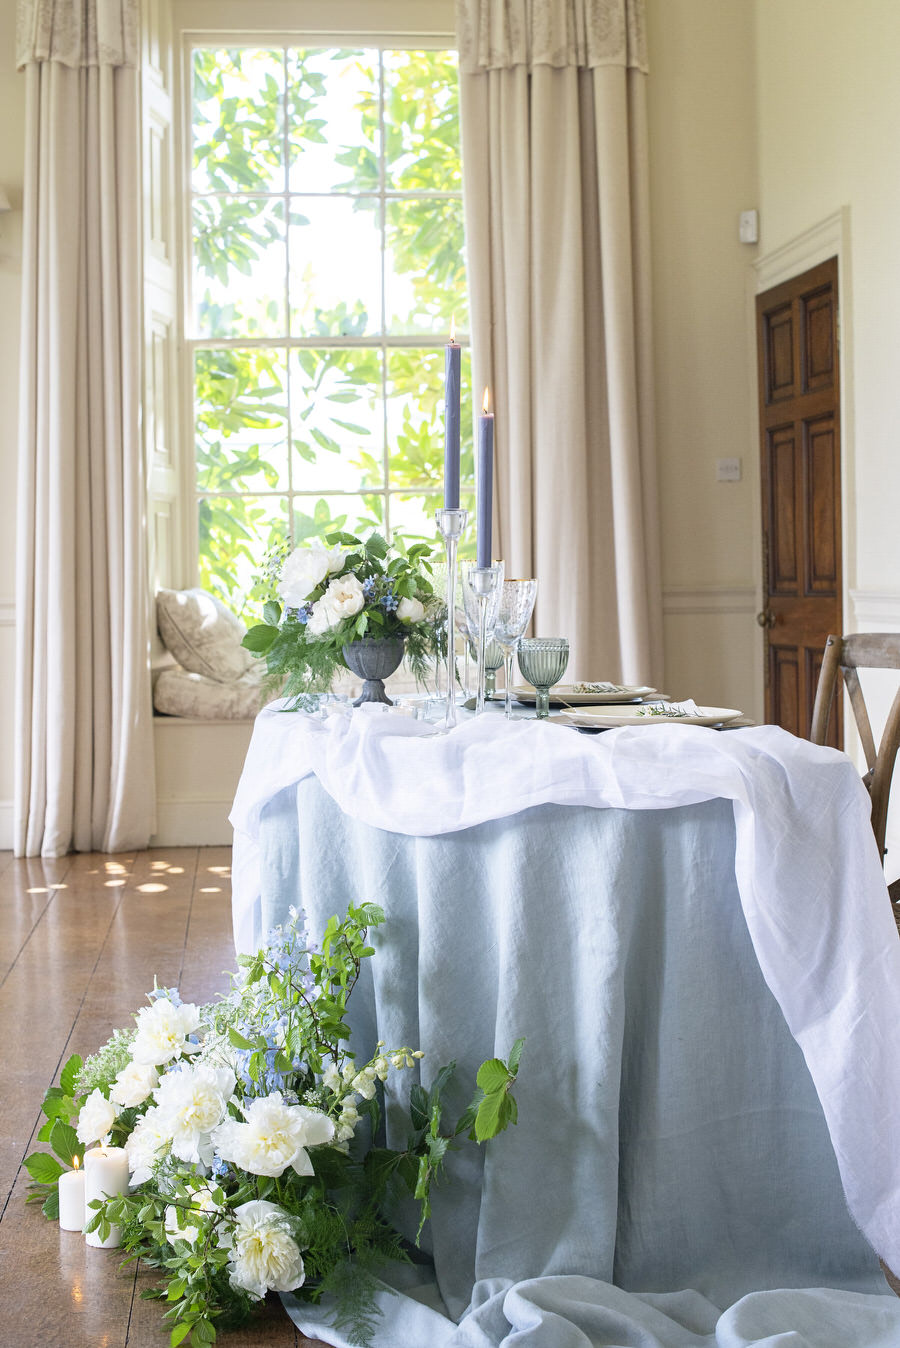 Pynes House wedding styling ideas with Ailsa Munro, Sarah Shuttle and Lottie Ettling PHotography (32)